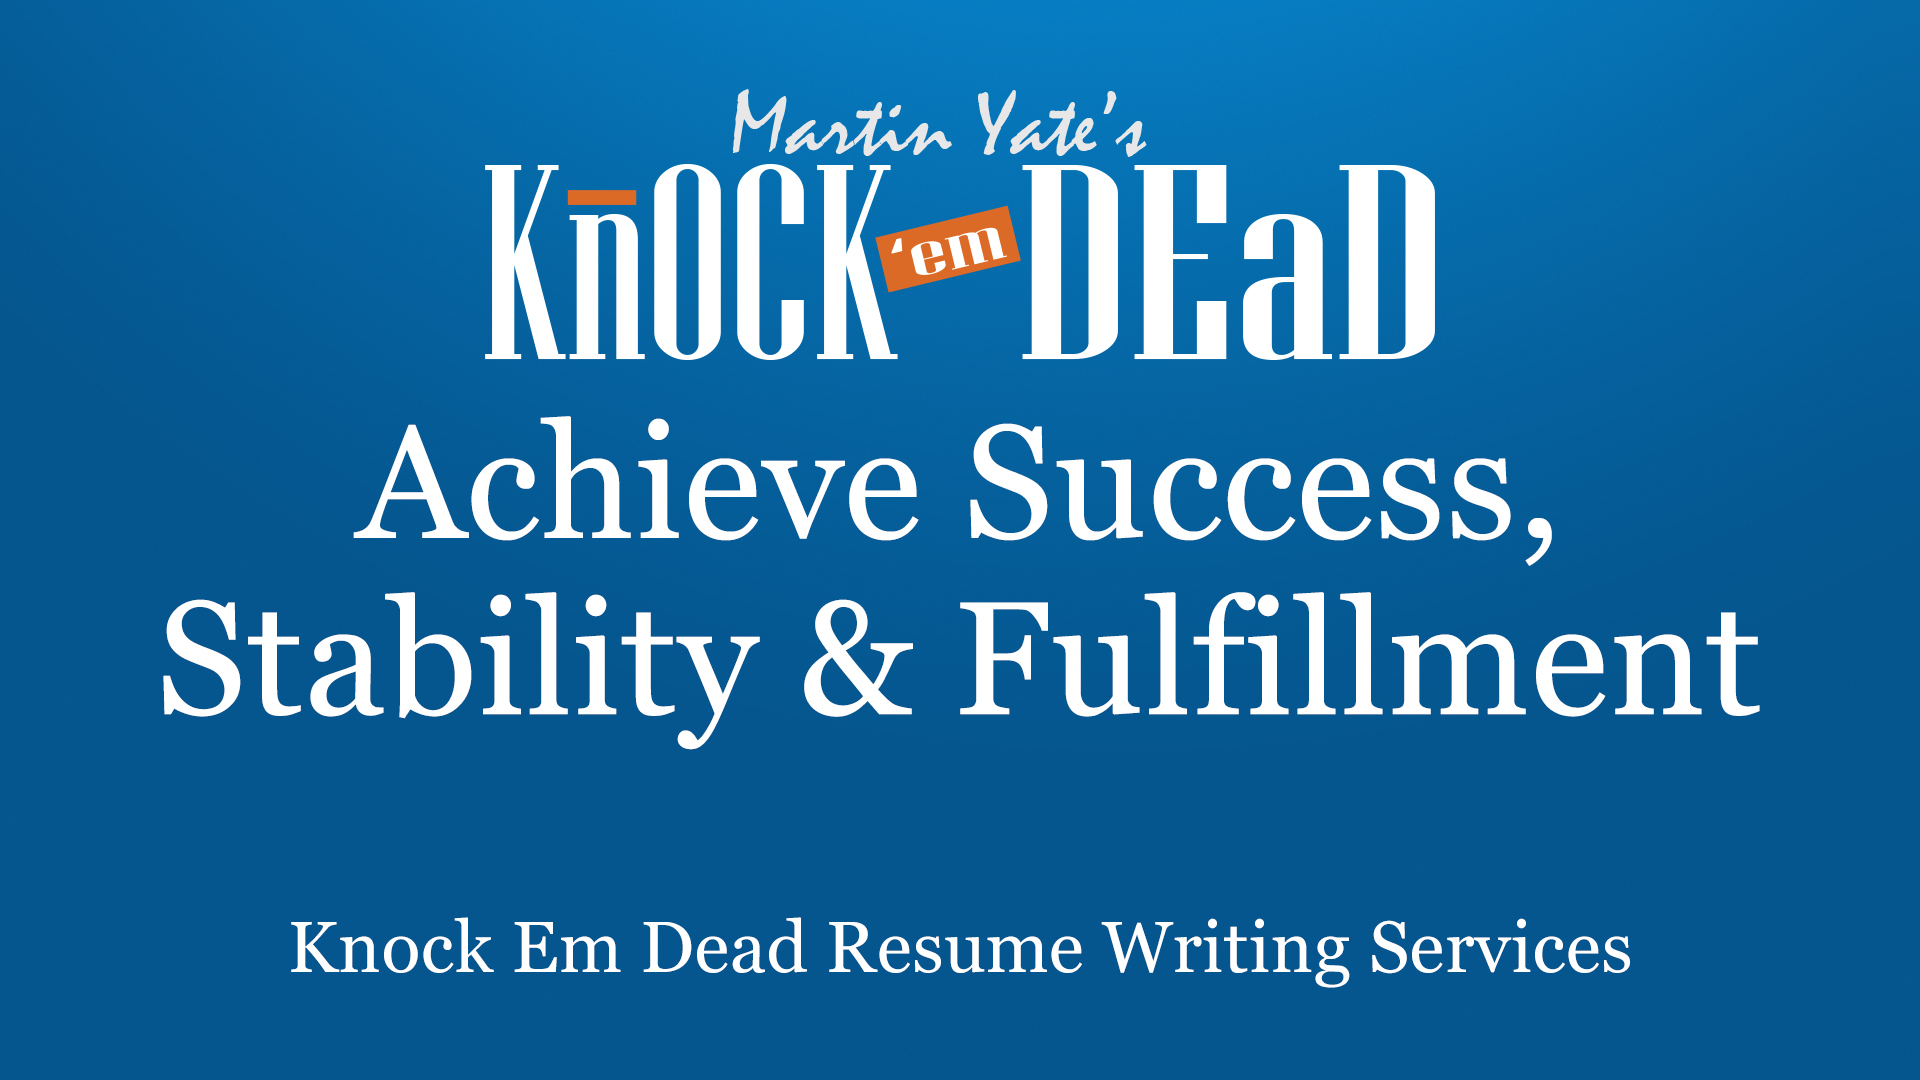 knock em dead resume writing career coaching services